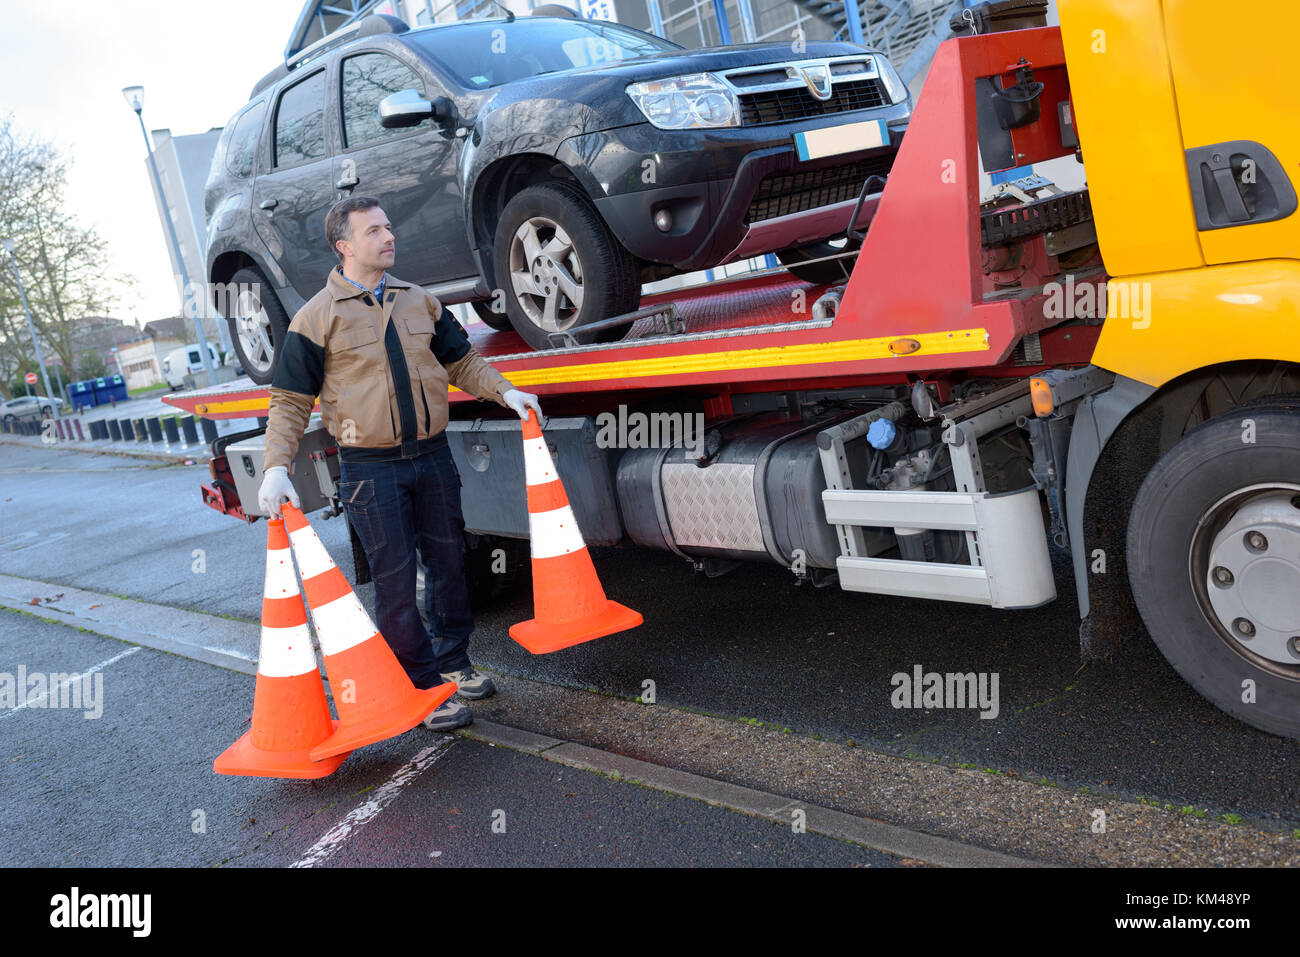 a tow truck takes away a broken car - Stock Image